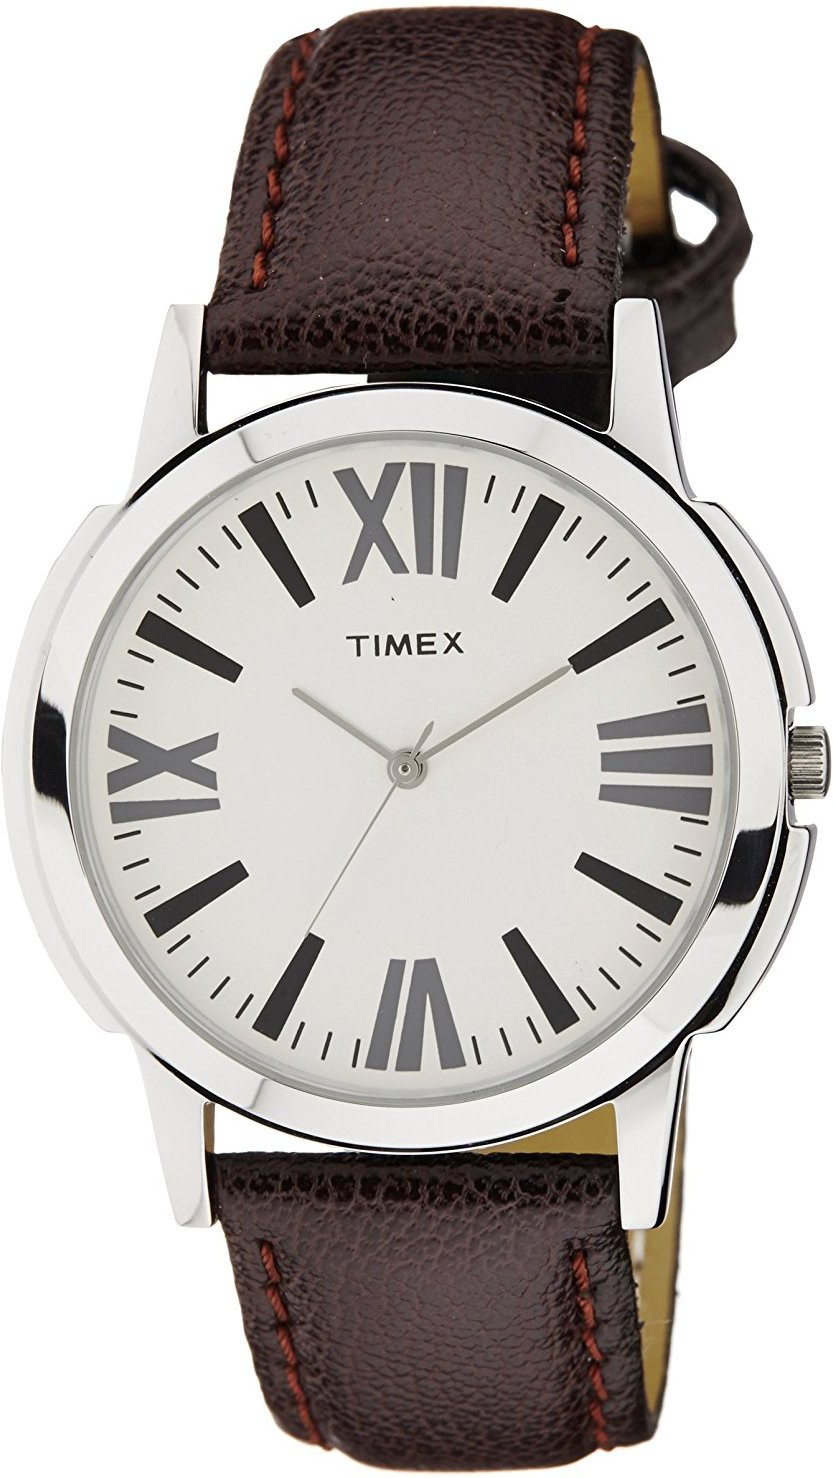 Deals - Delhi - Timex & more <br> Watches<br> Category - watches<br> Business - Flipkart.com